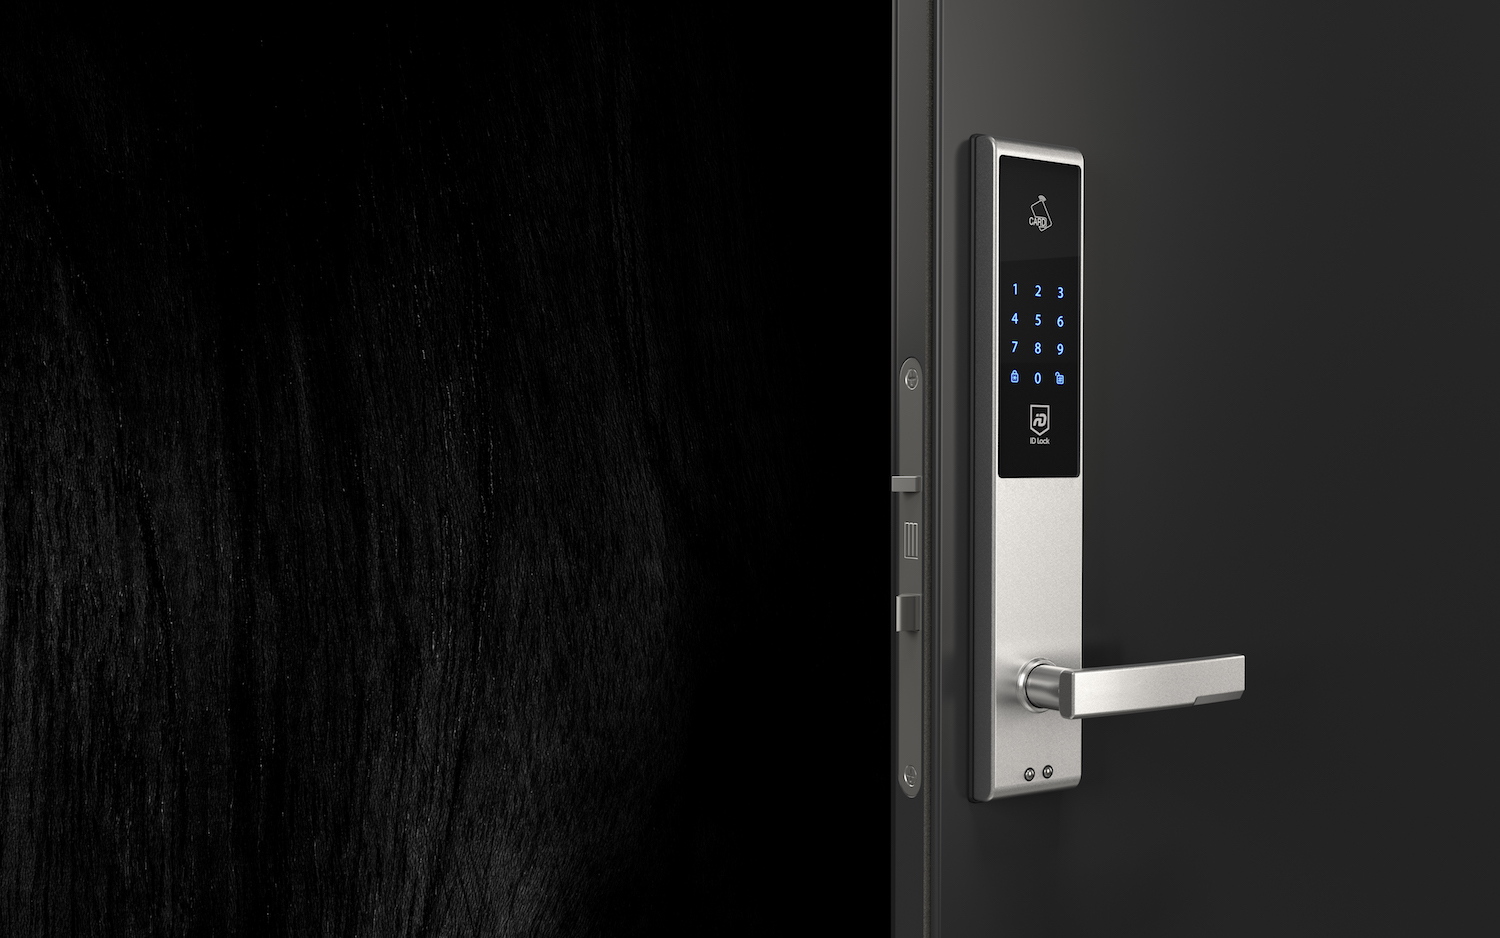 IDLock-150-Concept-Door-Perspective.jpg